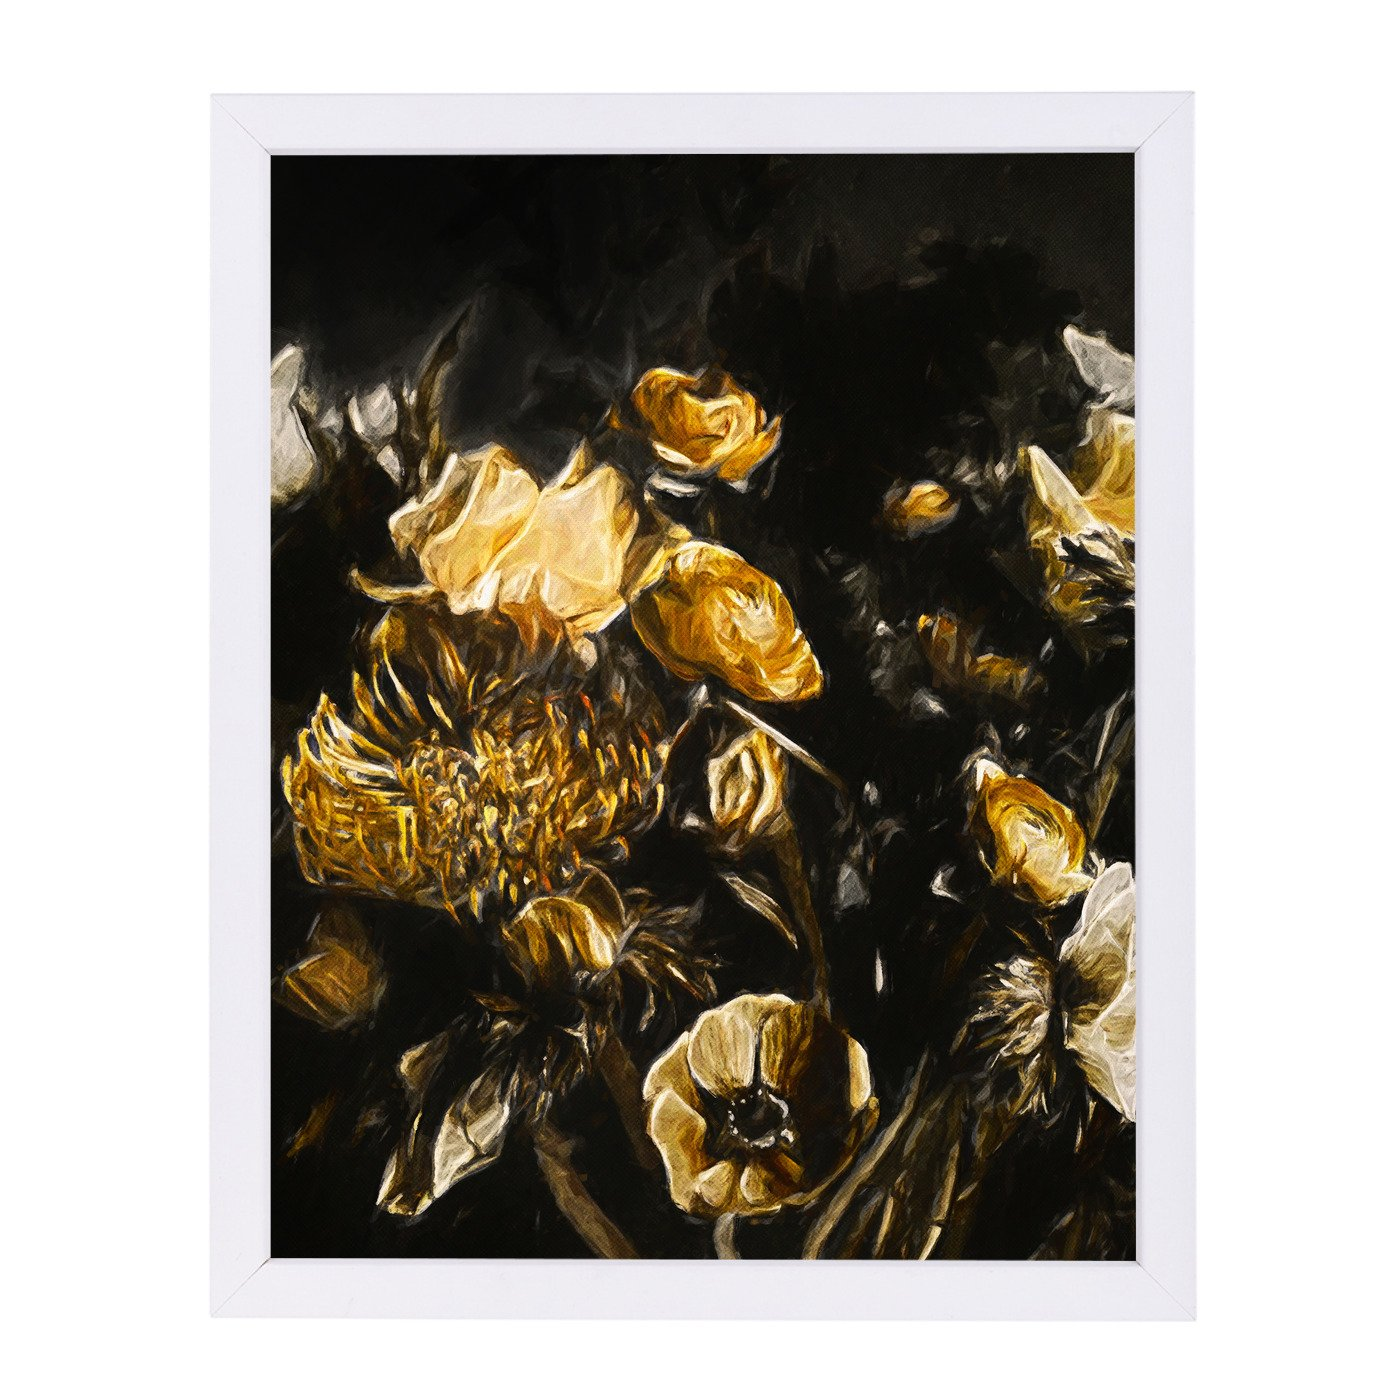 Dark Floral Ii By Chaos & Wonder Design - Framed Print - Americanflat